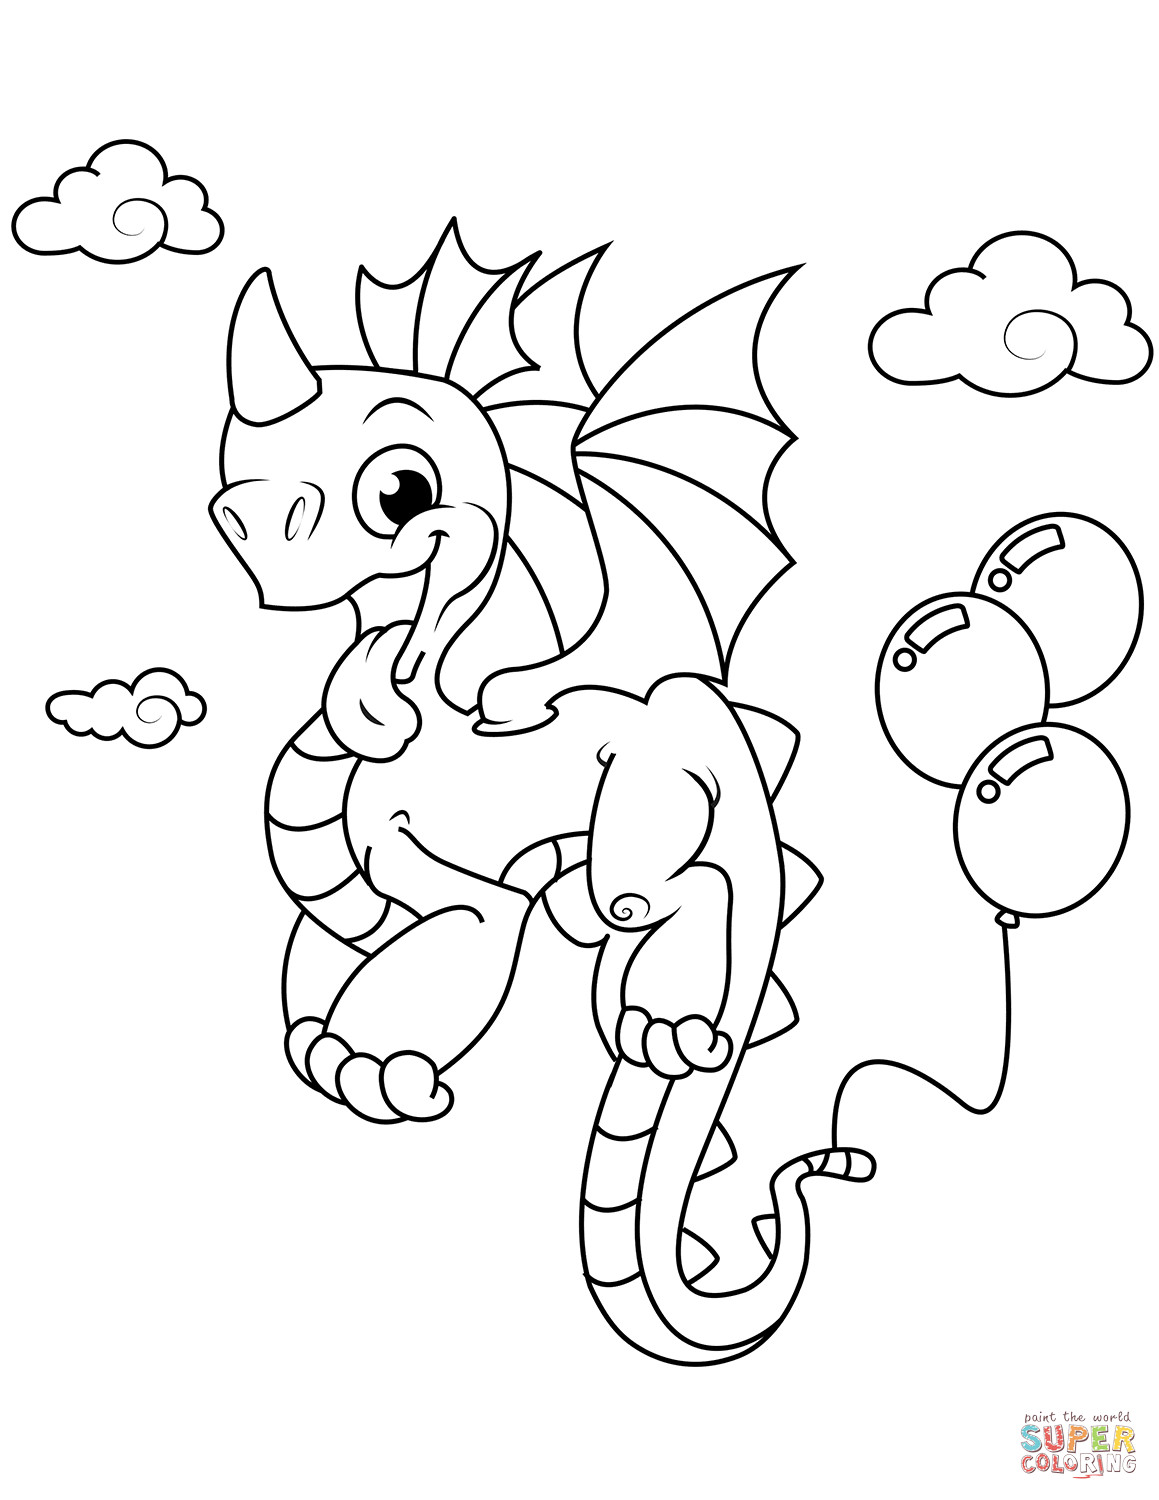 Best ideas about Free Printable Coloring Pages Dragons . Save or Pin Cute Dragon with Balloons coloring page Now.